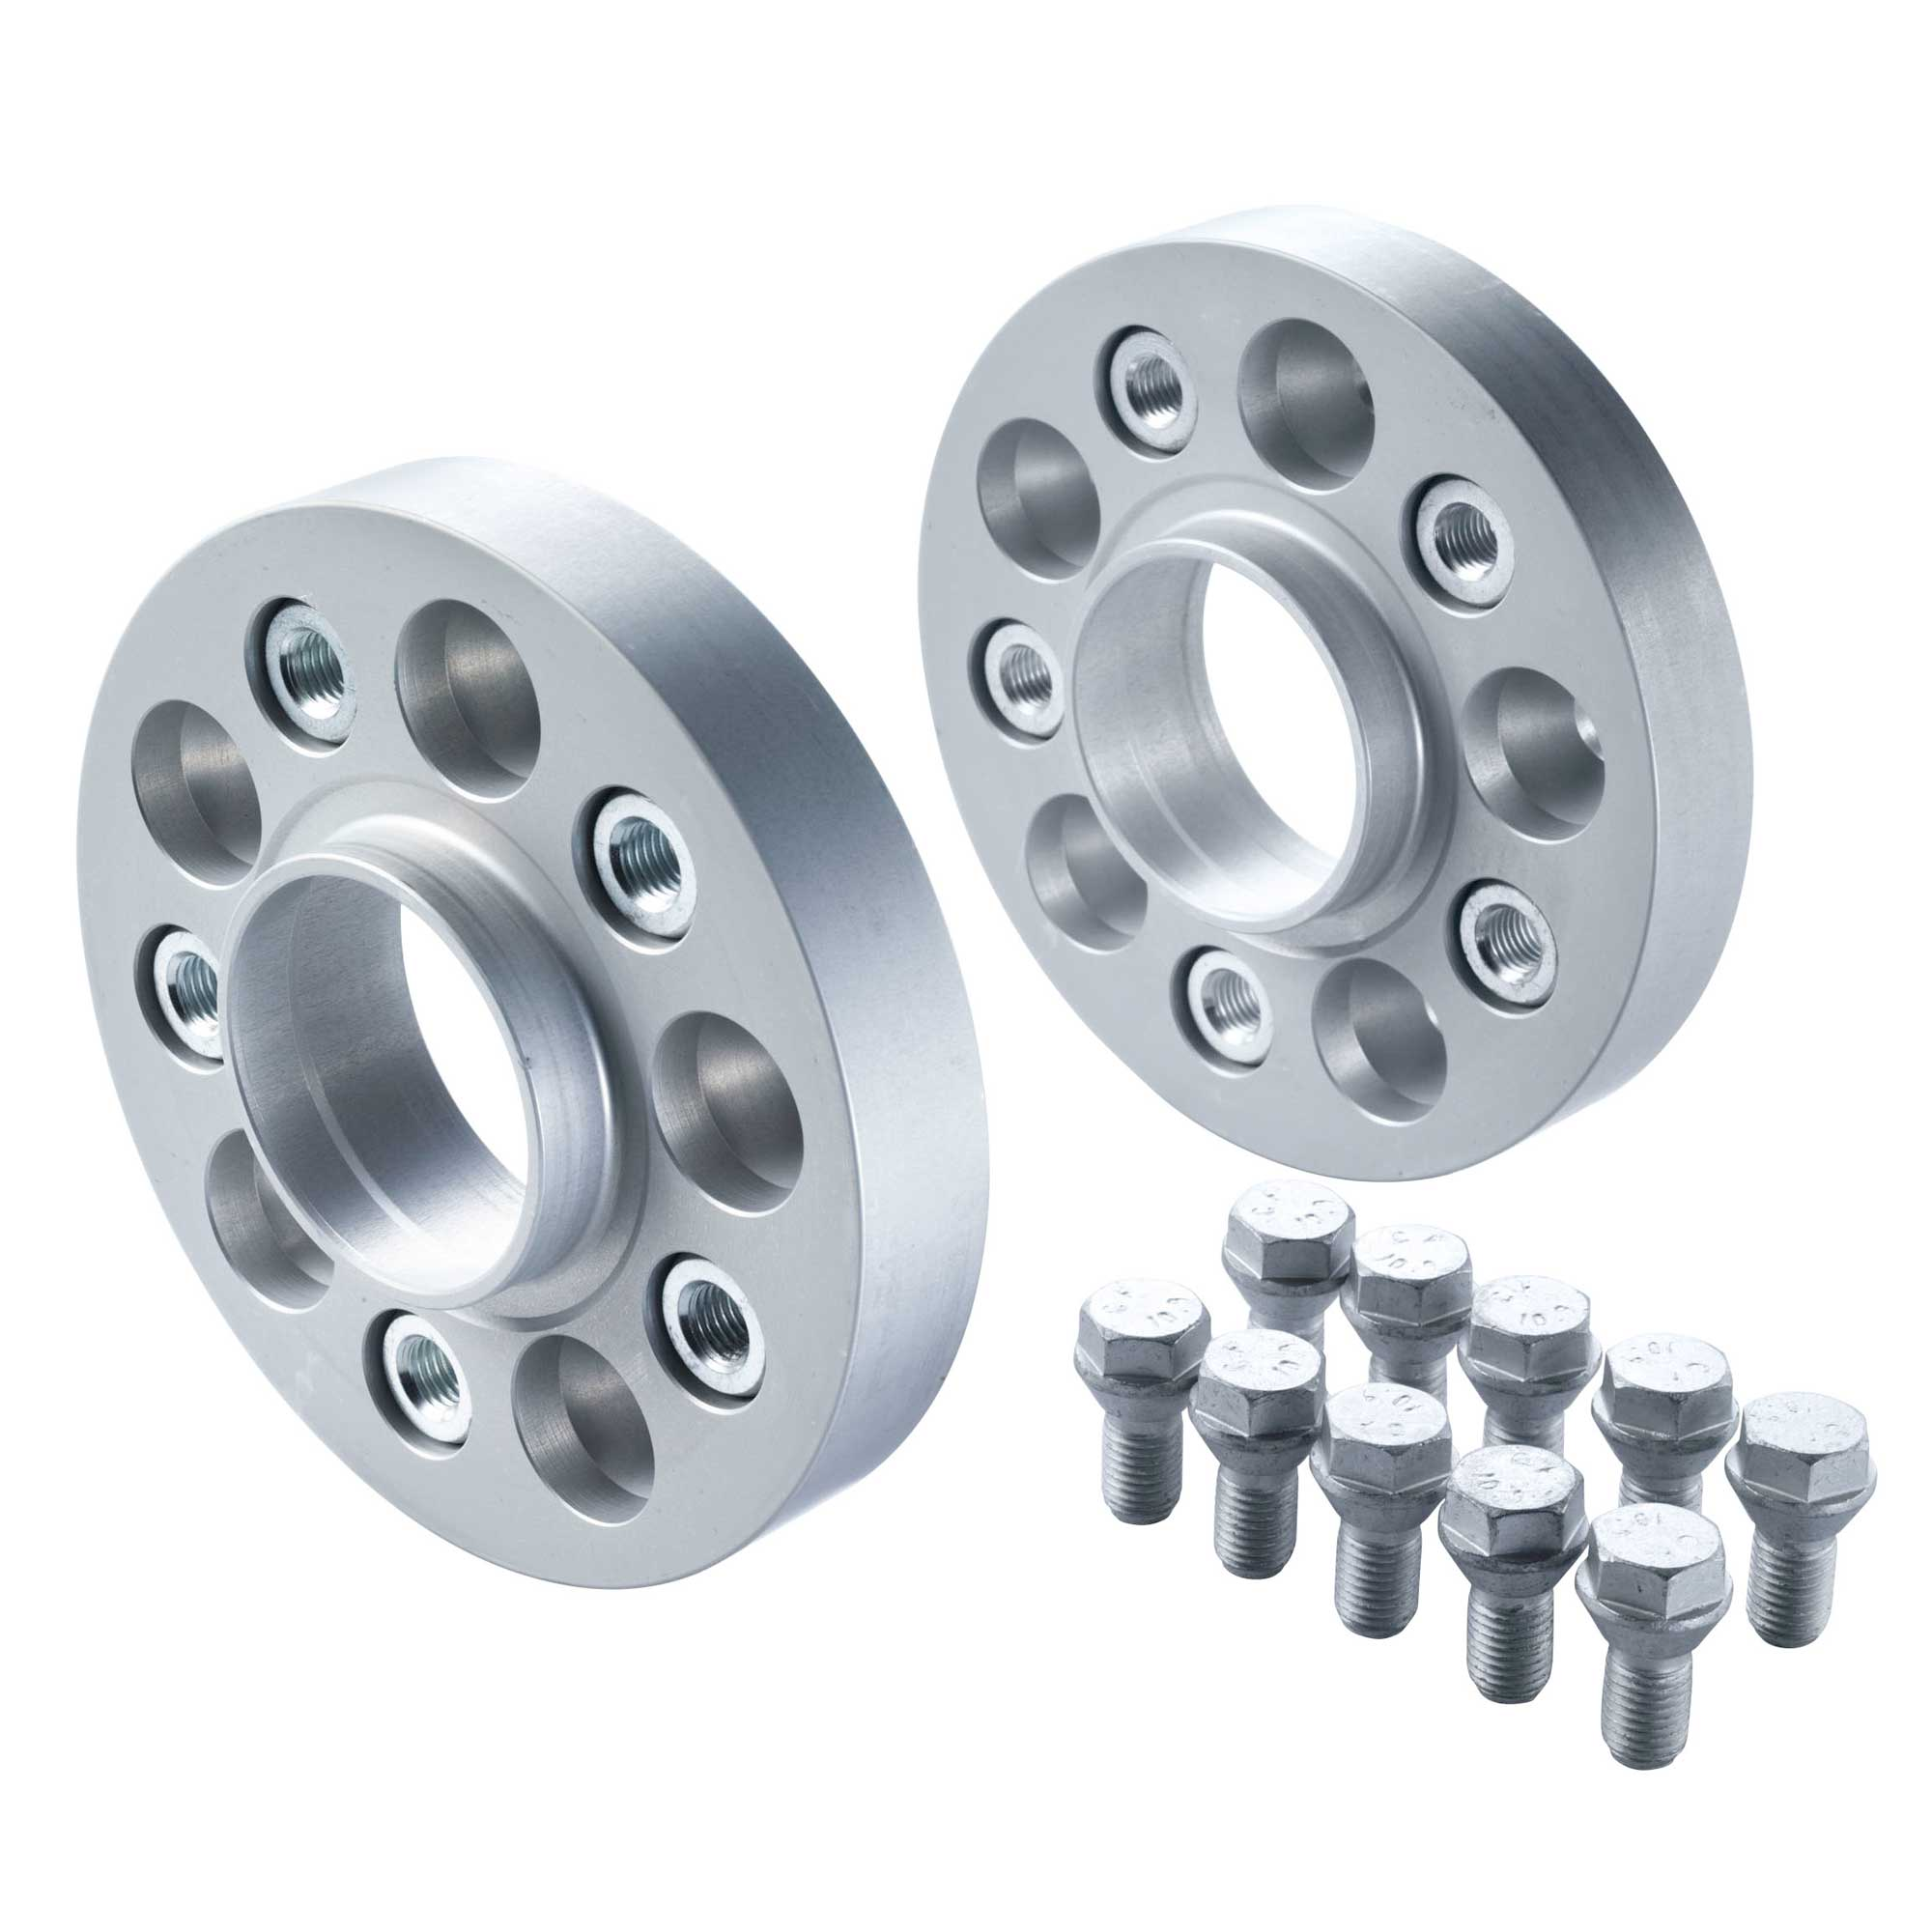 2x Fiat 20mm Wheel Spacer/'s Universal Fit 4 Stud Fitment